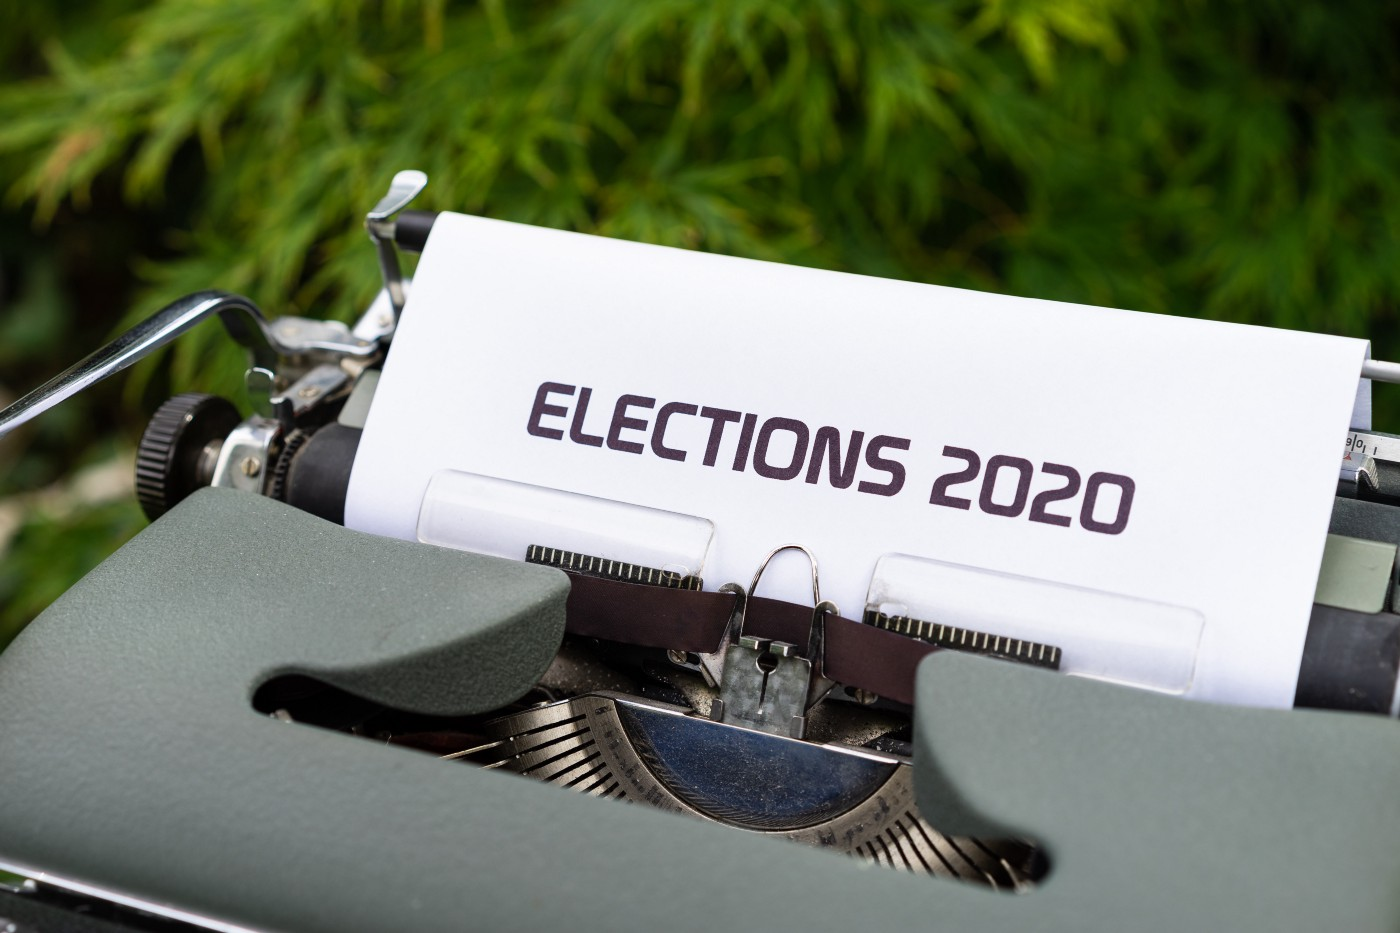 """typewriter with the words """"ELECTIONS 2020"""" typed in block letters on a piece of paper"""